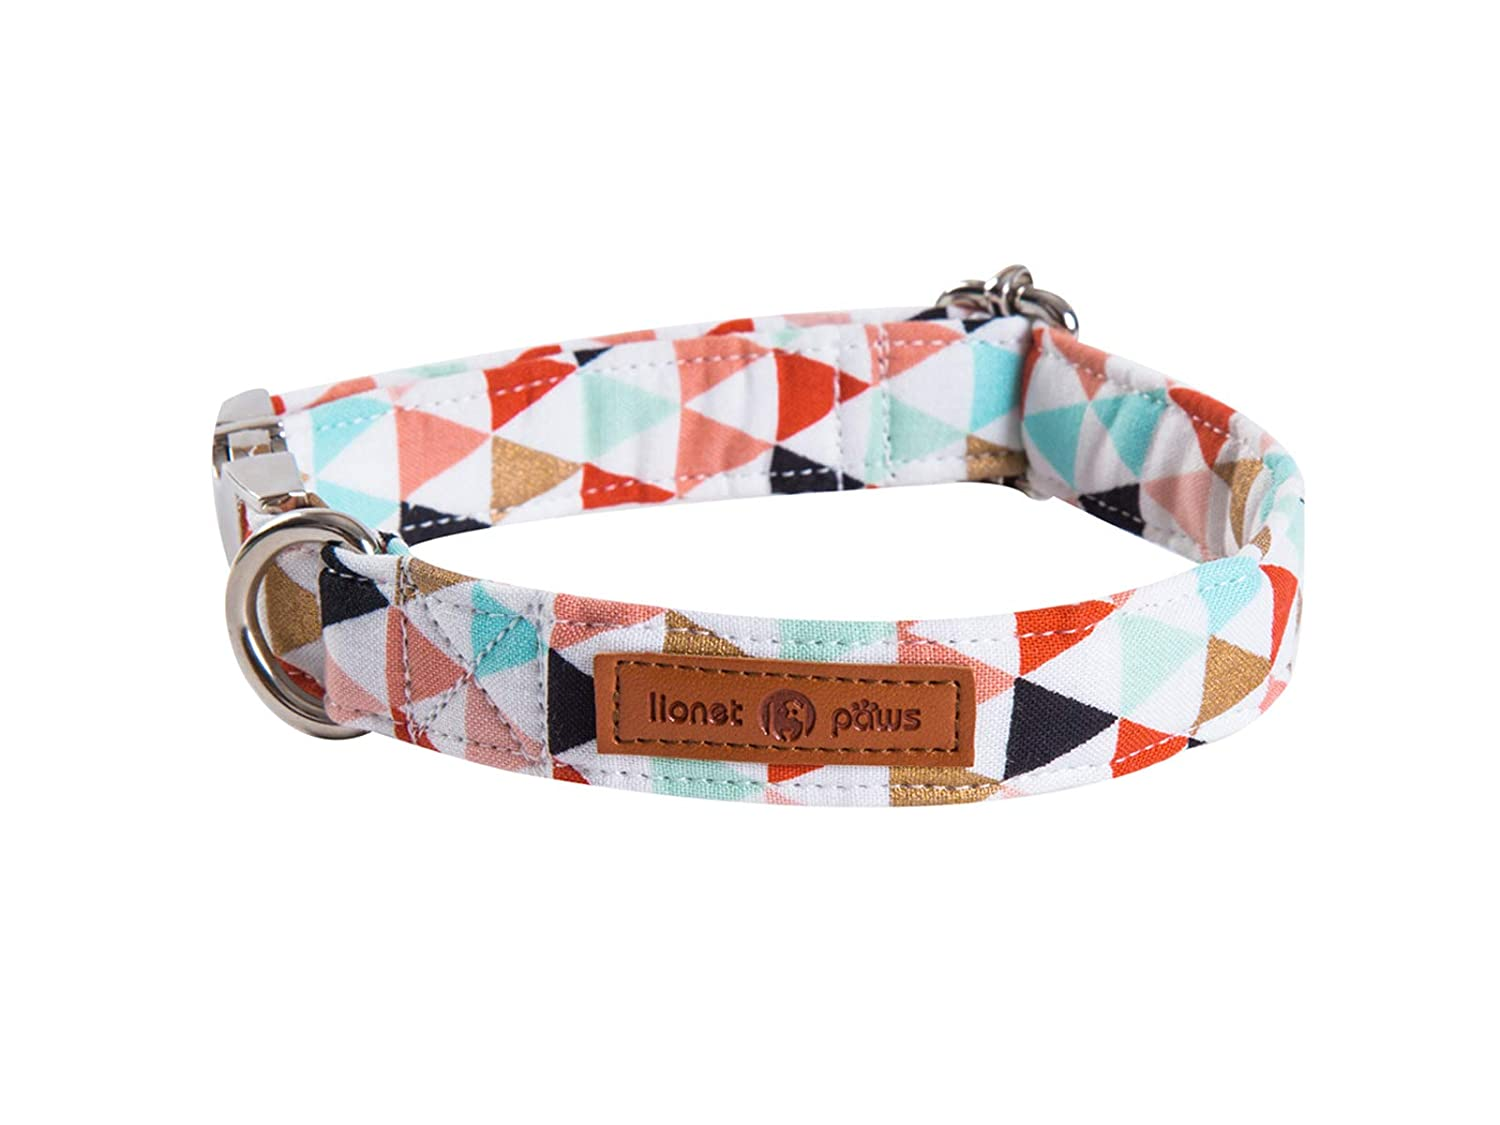 Neck 16-24in Lionet Paws Cotton Dog Collar with Bowtie Durable Adjustable and Comfortable Collar for Large Dogs